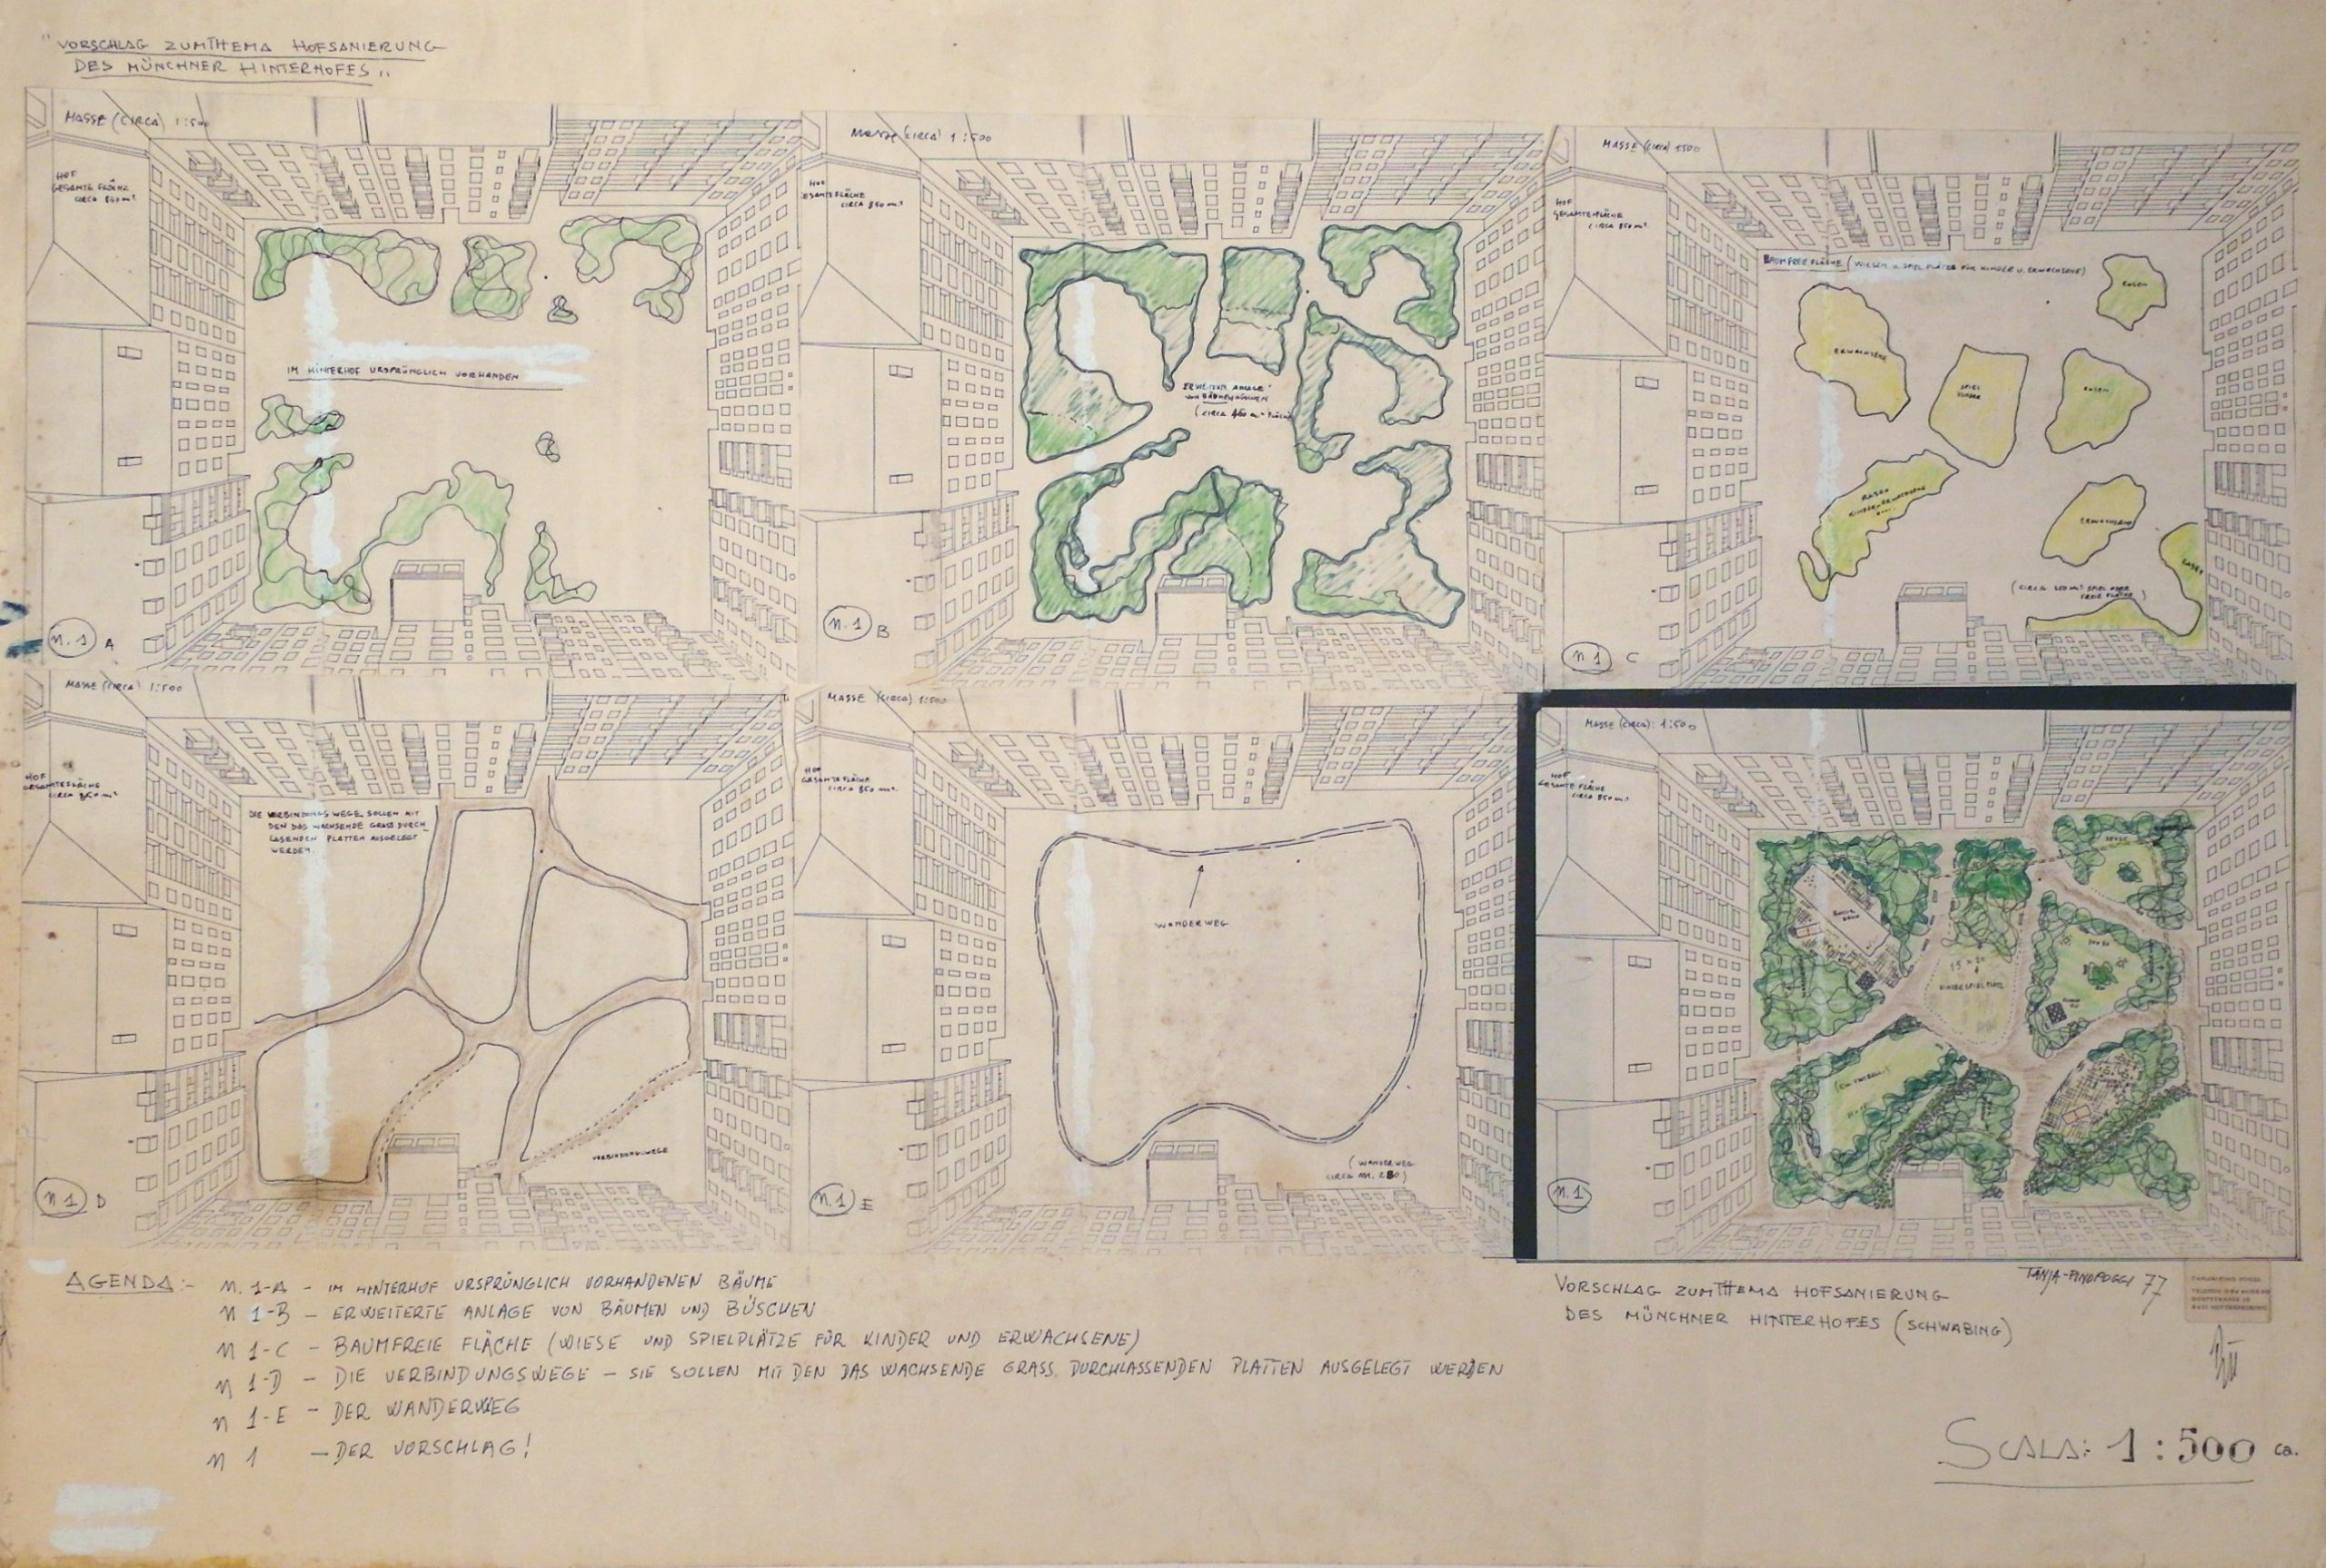 Ground plans of backyards with green marked vegetation.